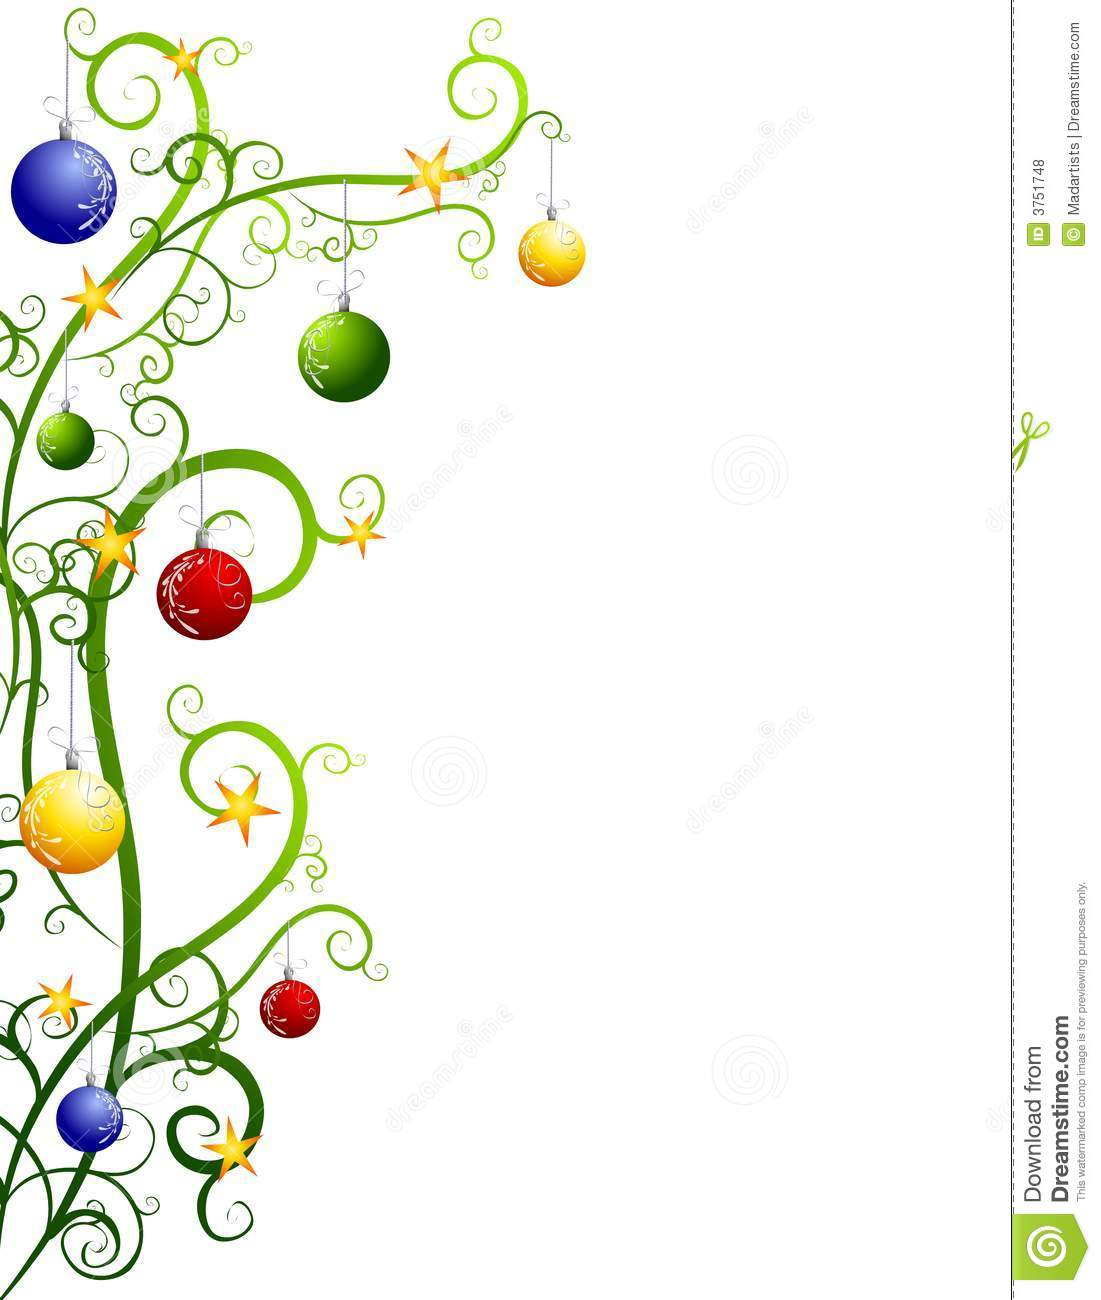 Christmas Ornaments Clipart Border Free.